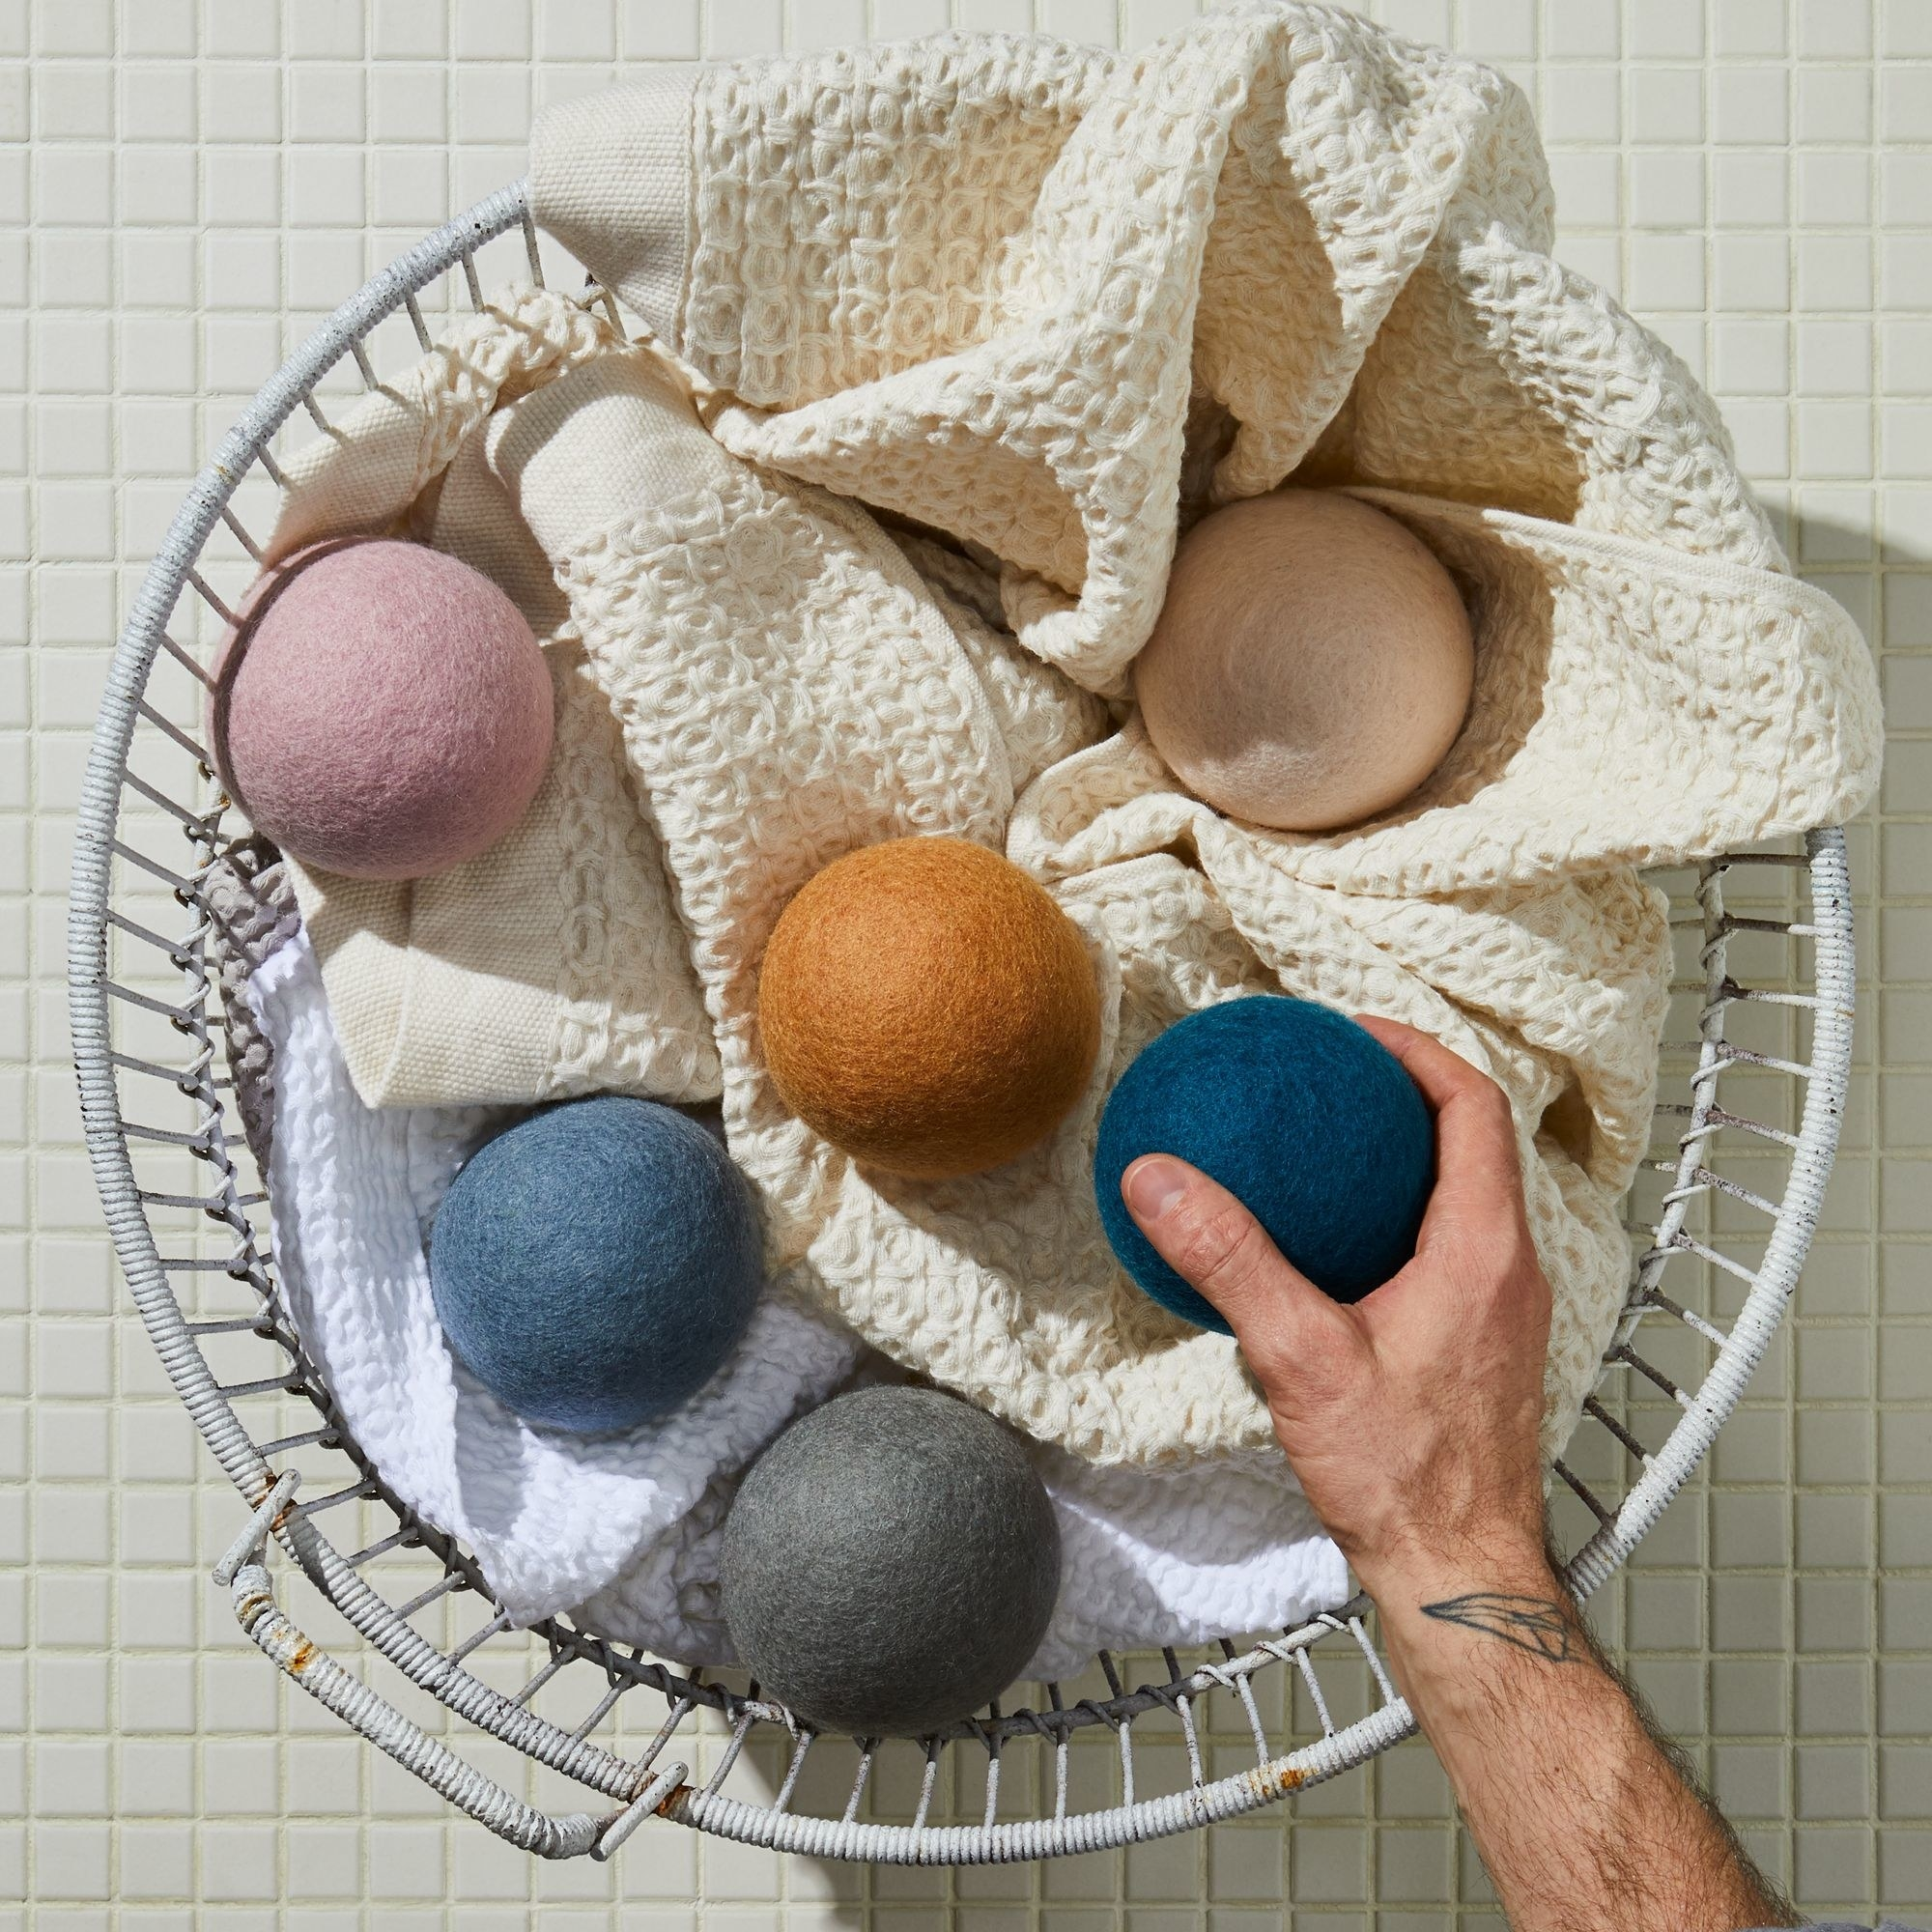 Laundry basket with several hand-sized wool balls inside